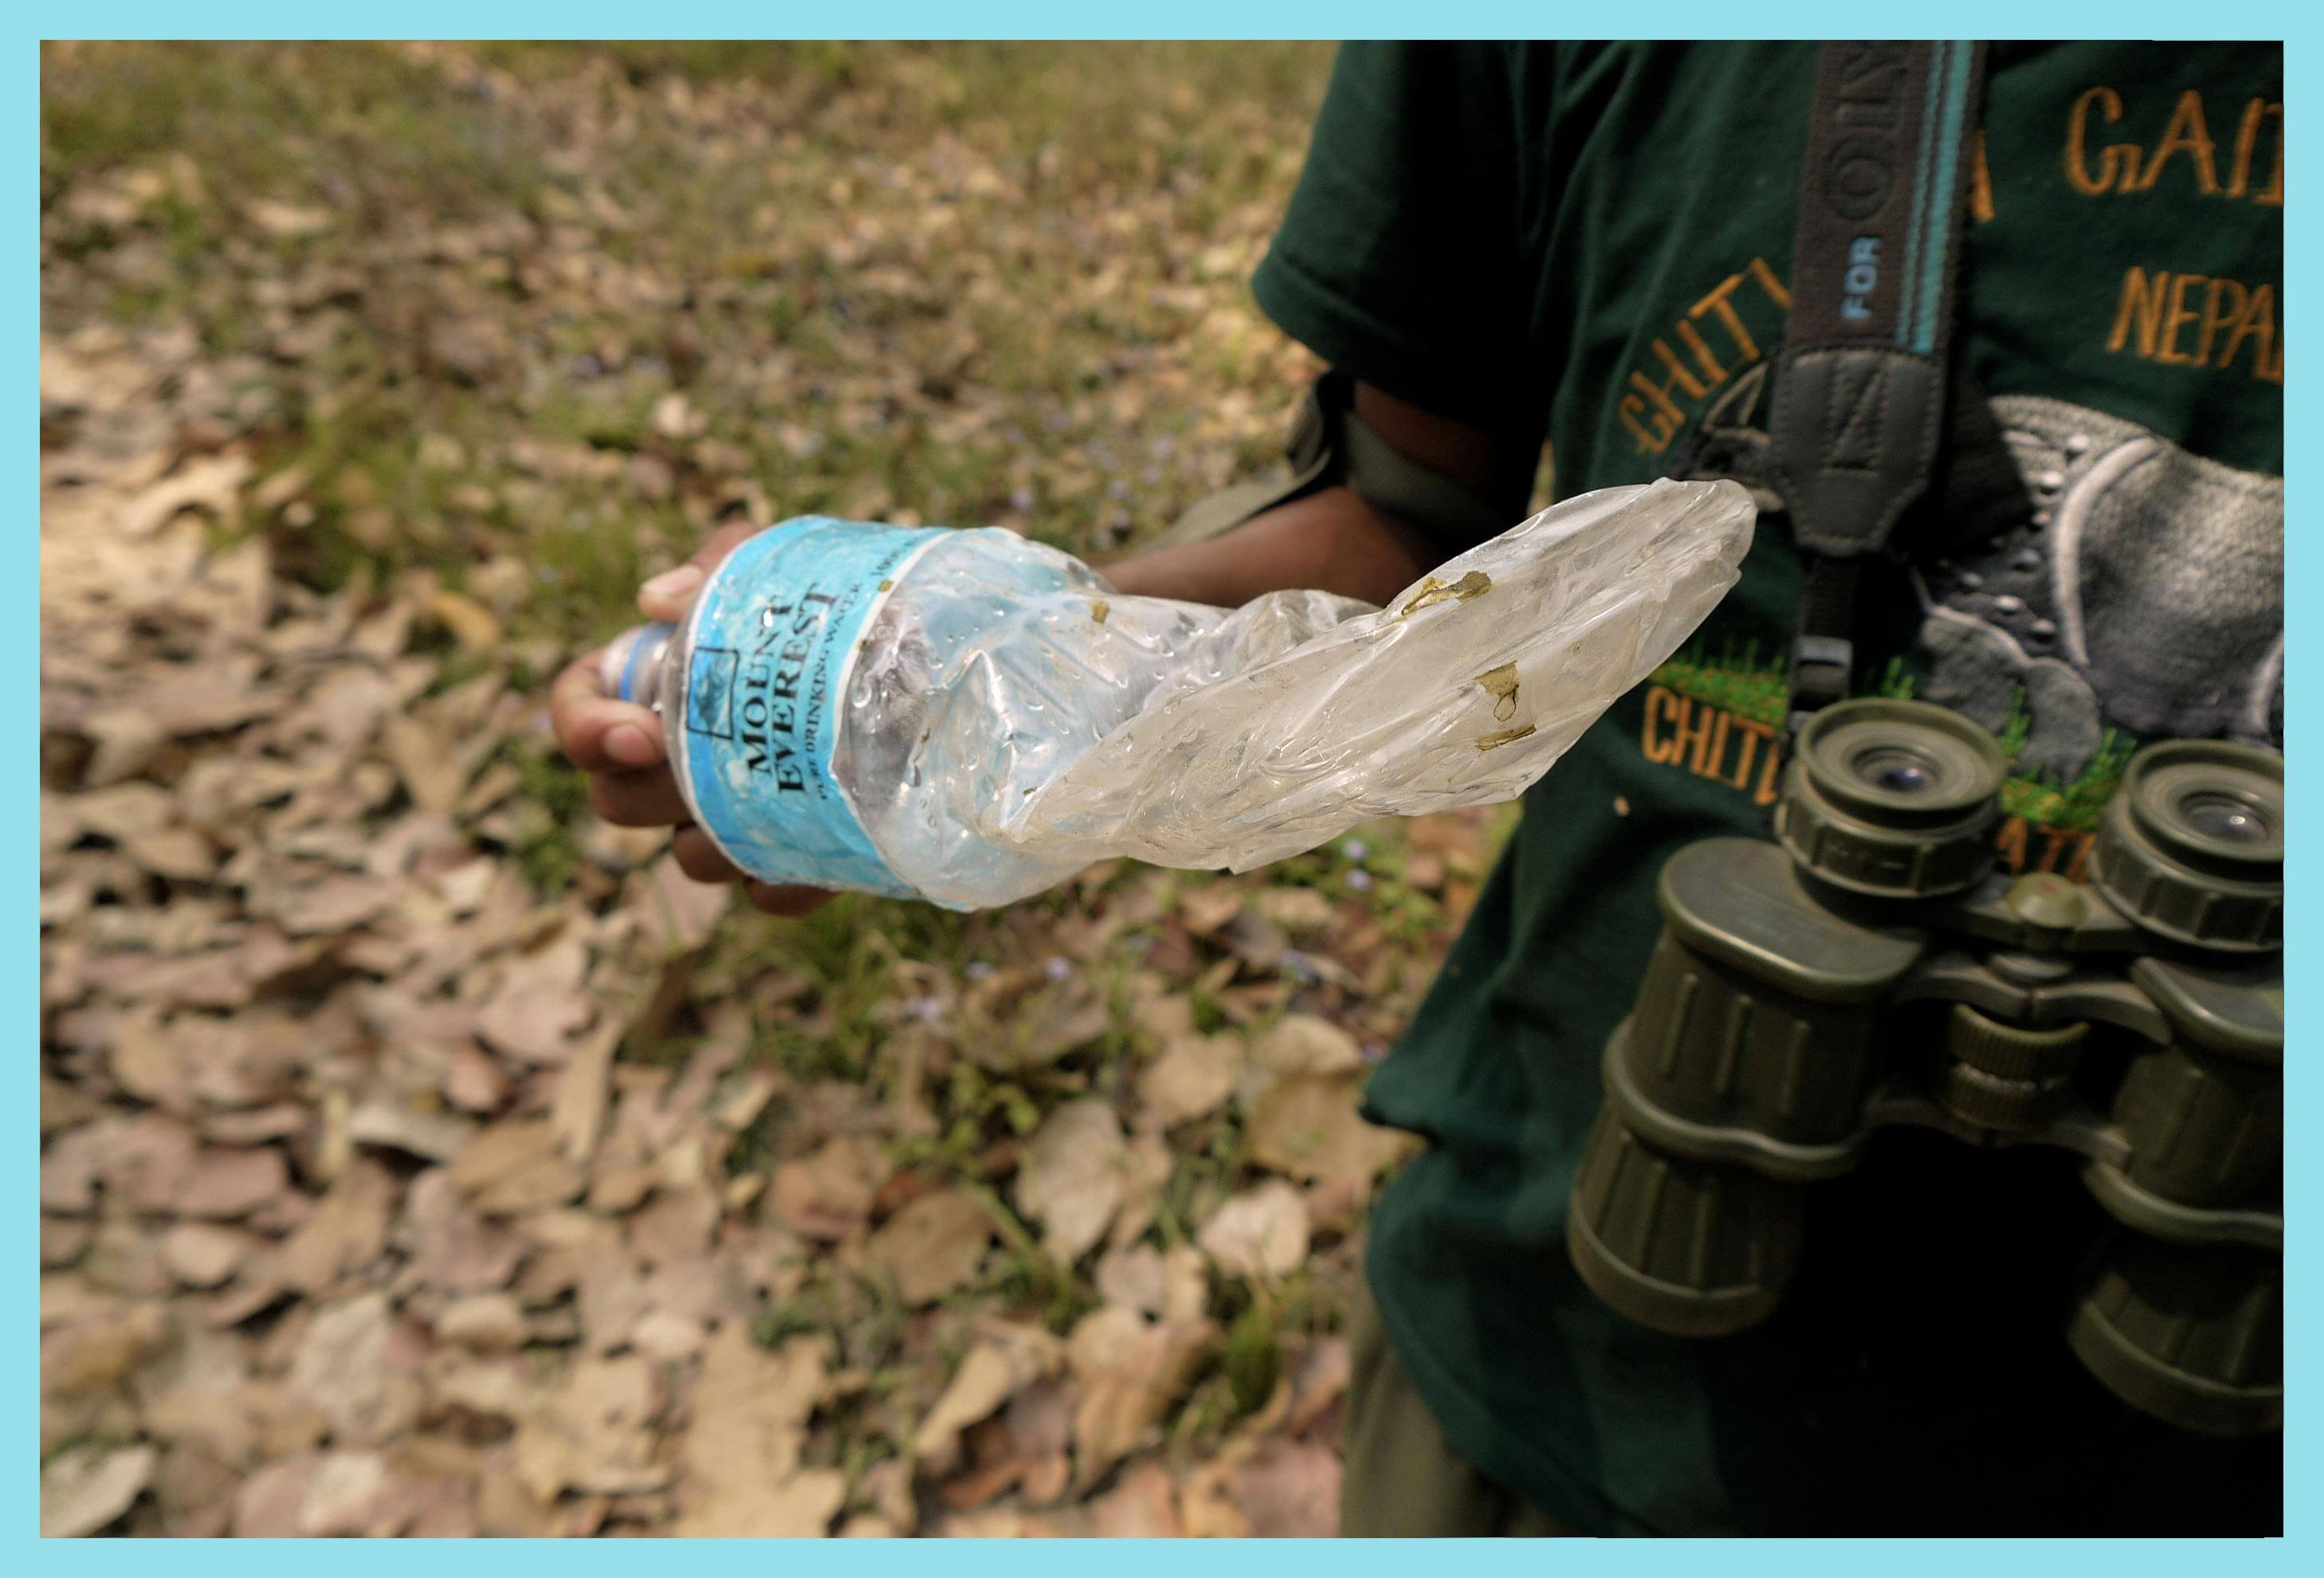 What a rhino does to a water bottle.